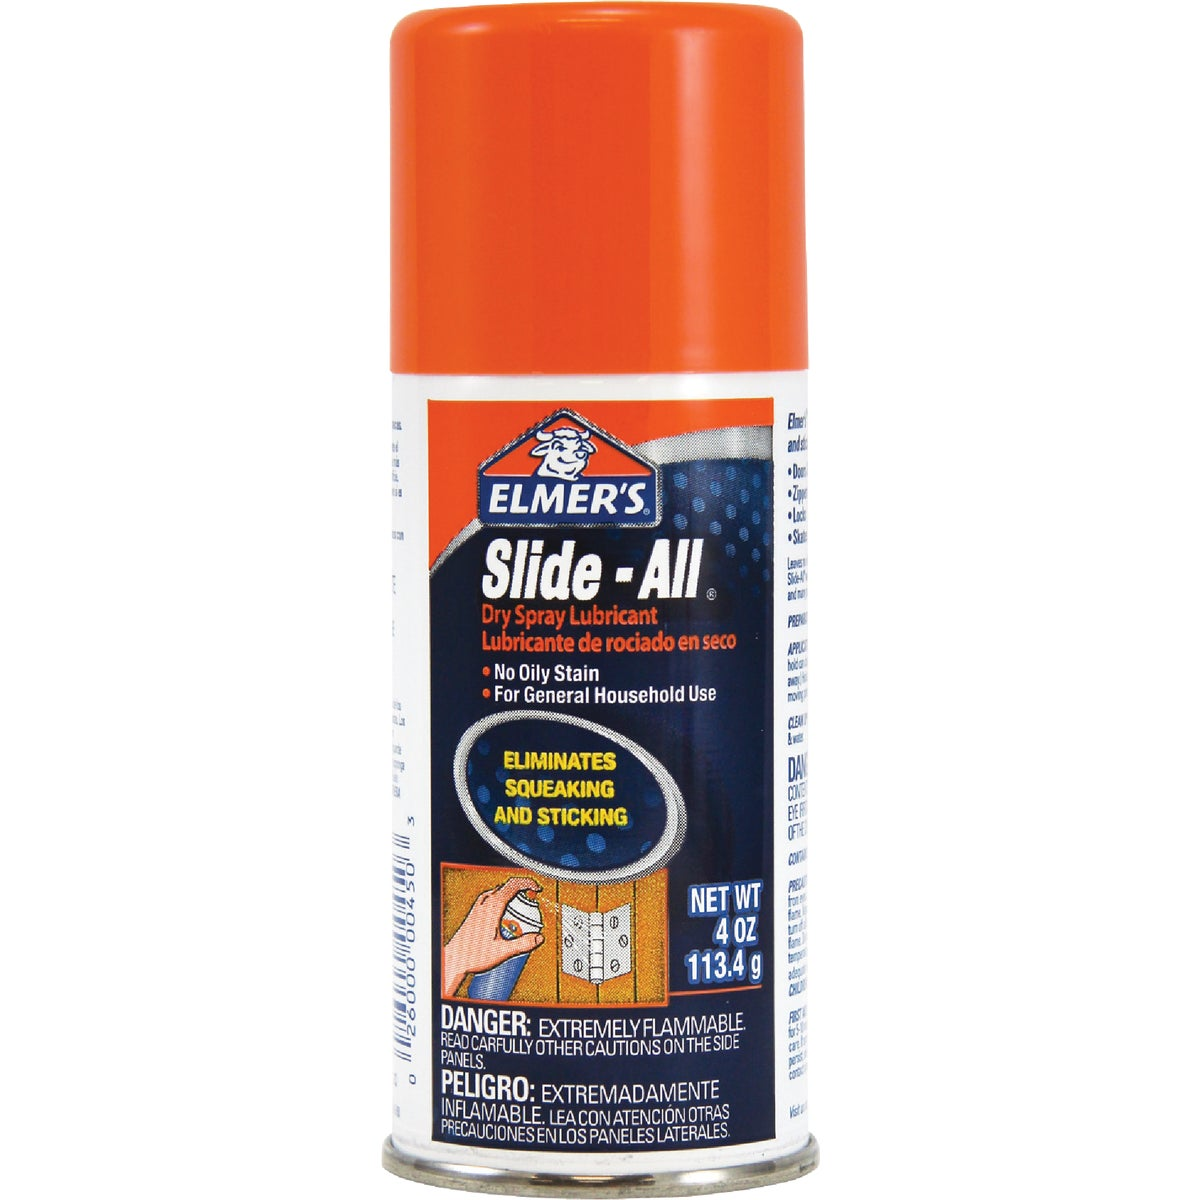 4OZ SPRAY LUBRICANT - E450 by Elmers Products Inc